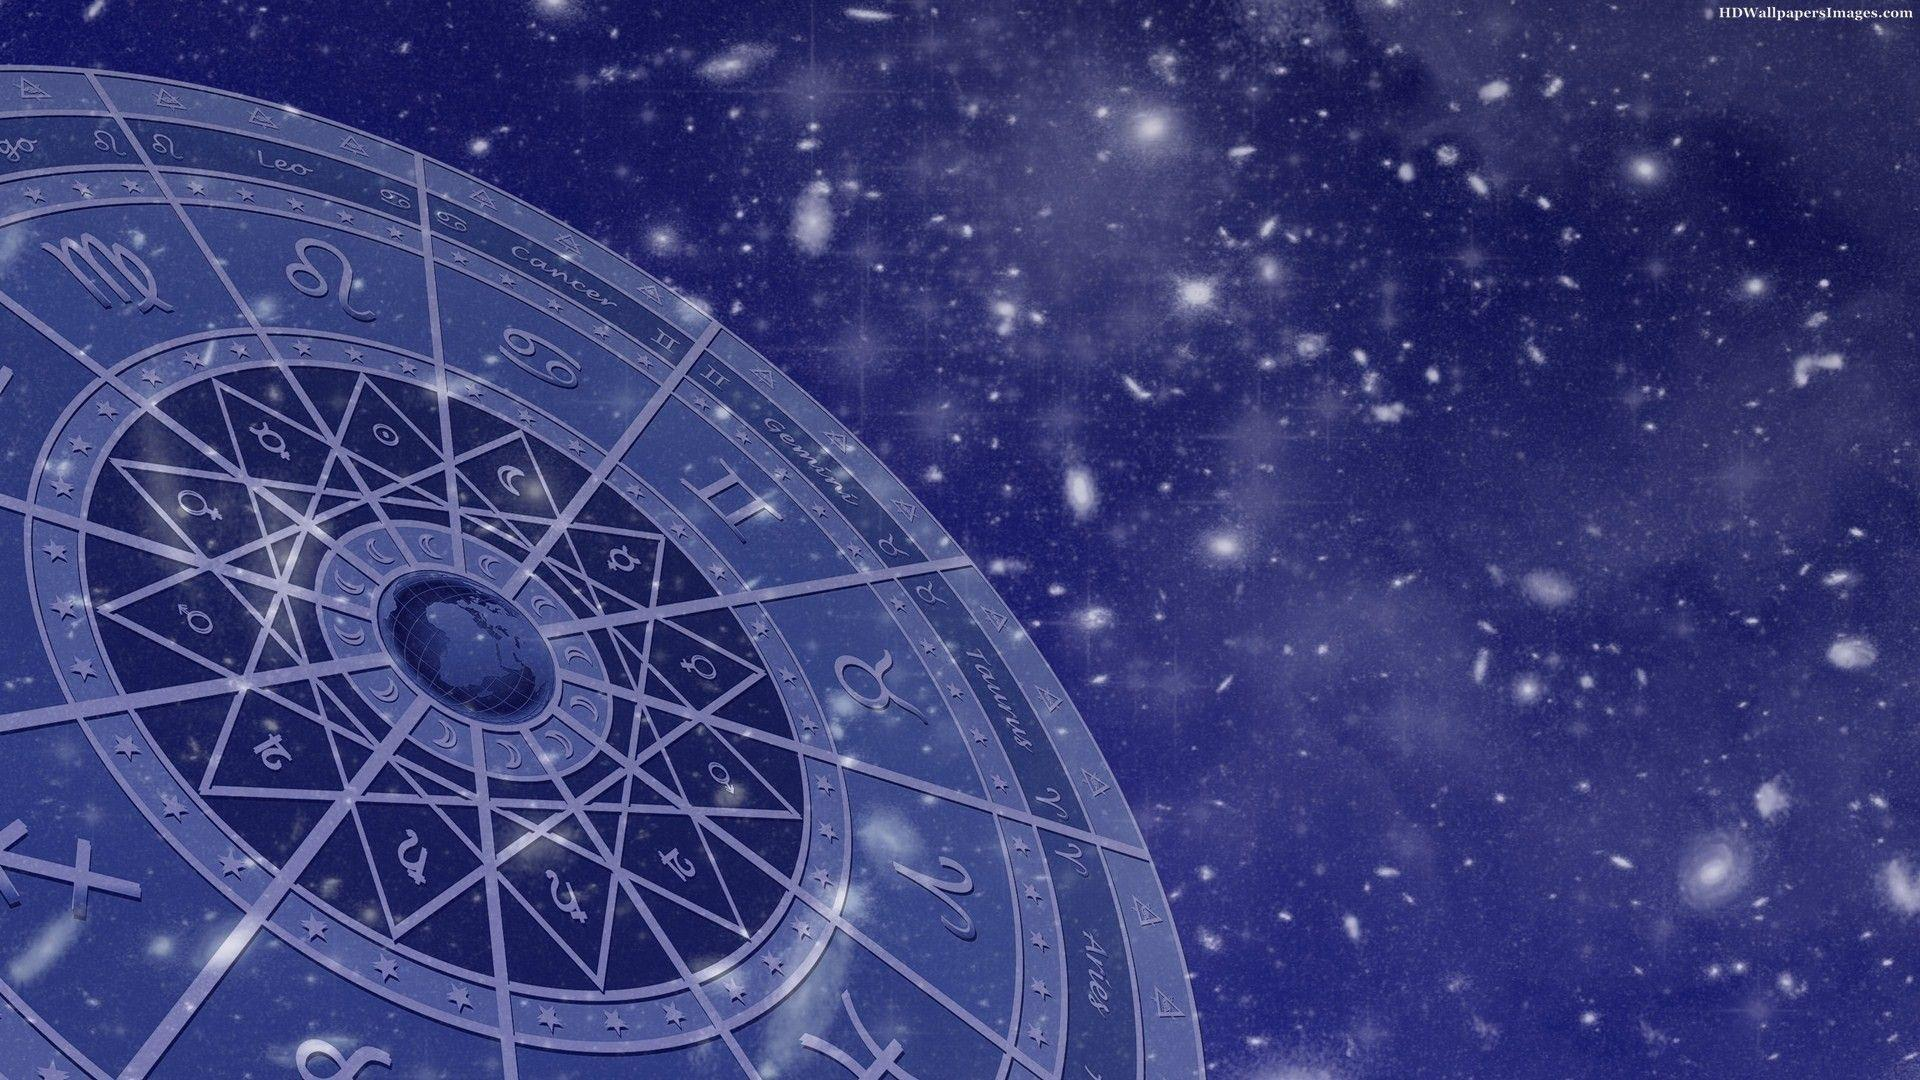 Astrology Wallpapers Wallpaper Cave